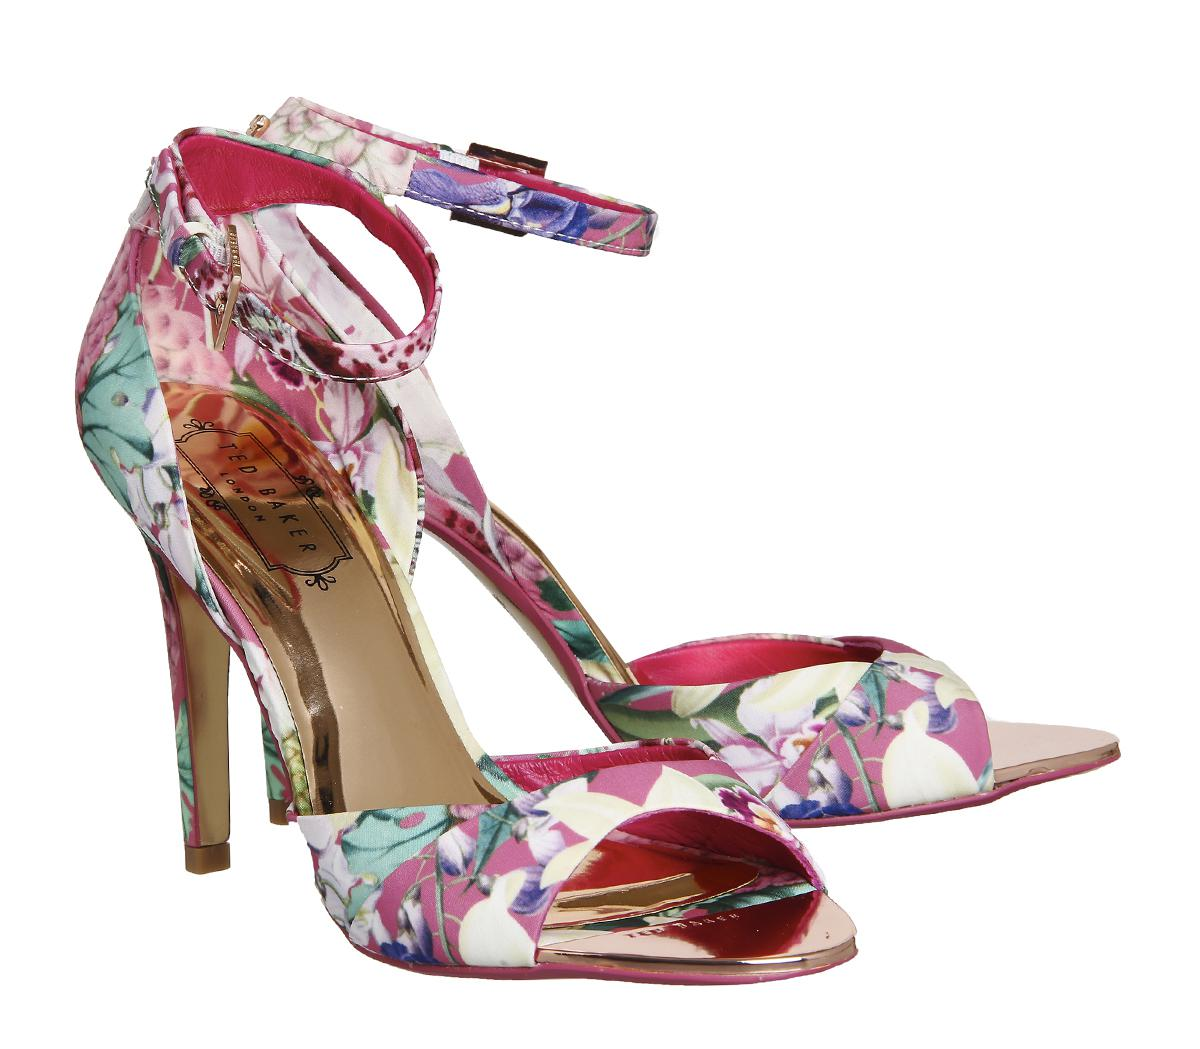 4ac8974ef08c Lyst - Ted Baker Caleno Strappy Heels